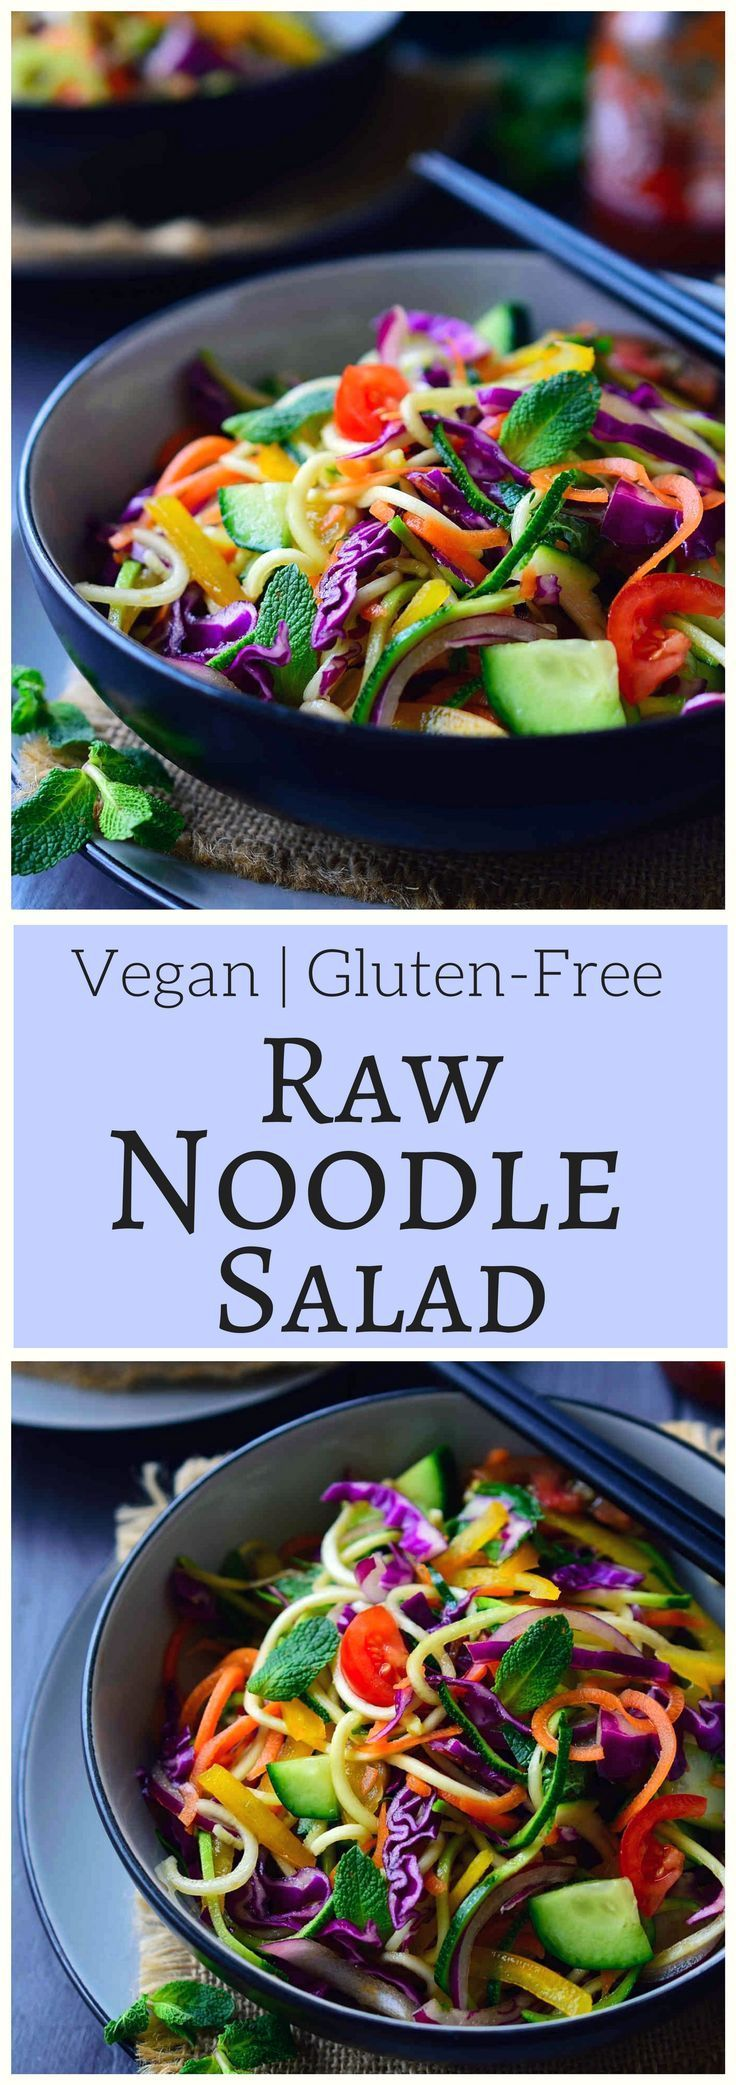 1088 best vegan salads raw foods images on pinterest vegan this raw vegan noodles salad recipe is super quick and easy to put together and is forumfinder Image collections